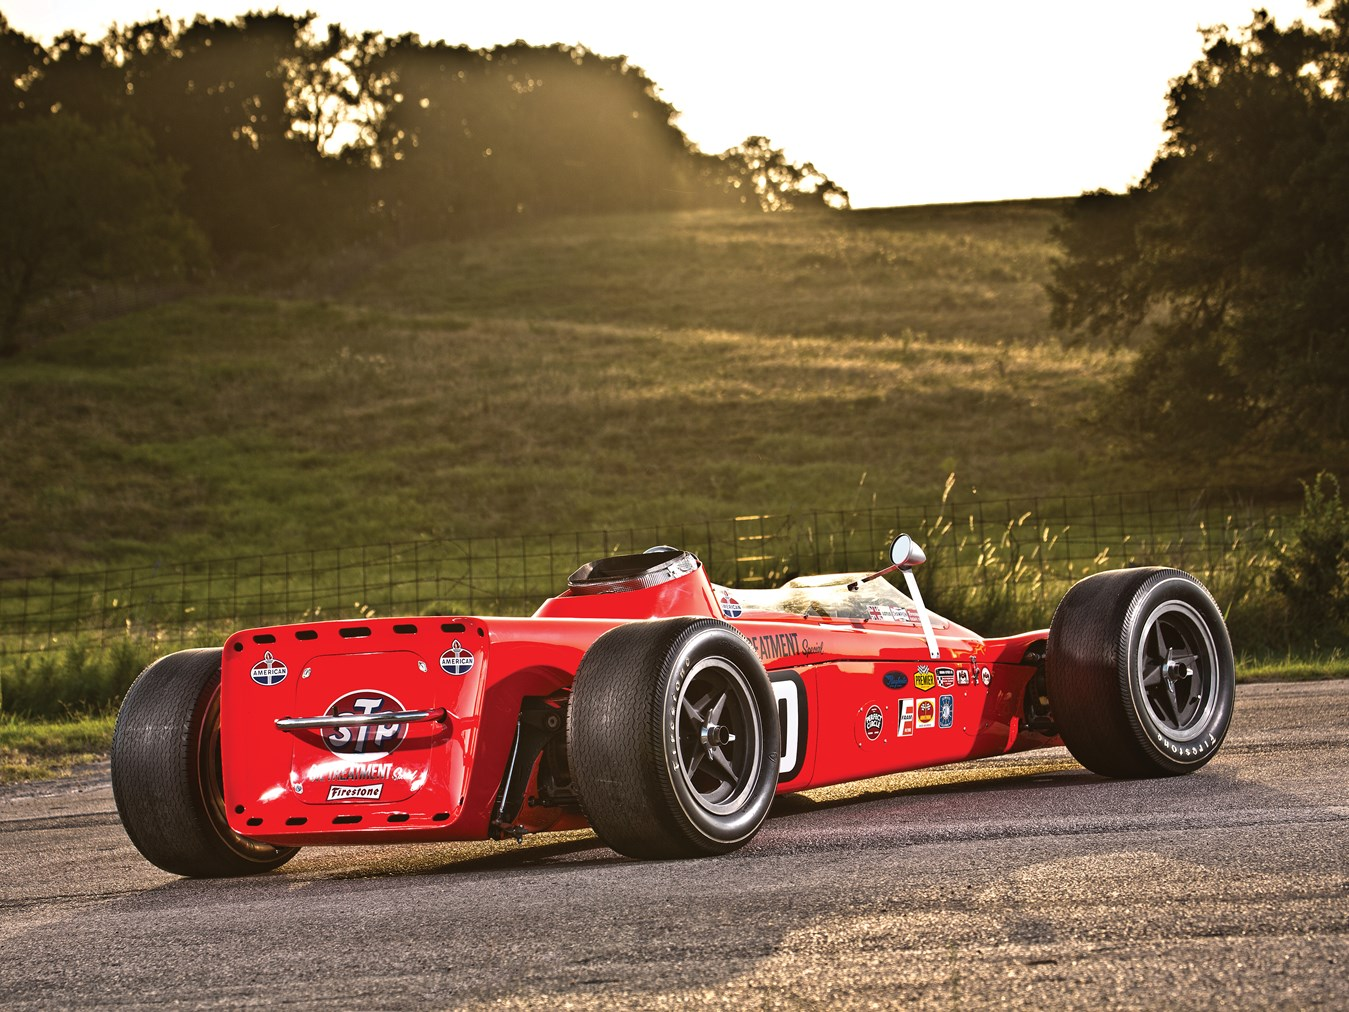 The Lotus 56 was a very minimalist design.